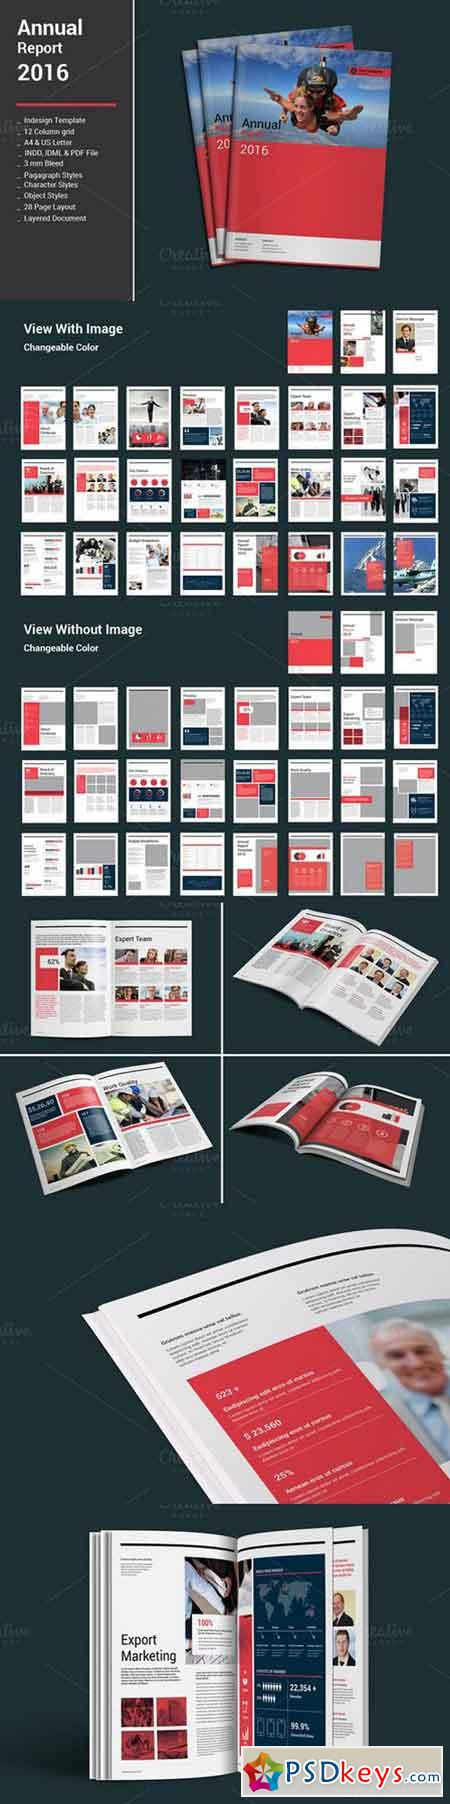 Annual Report Templates 385624